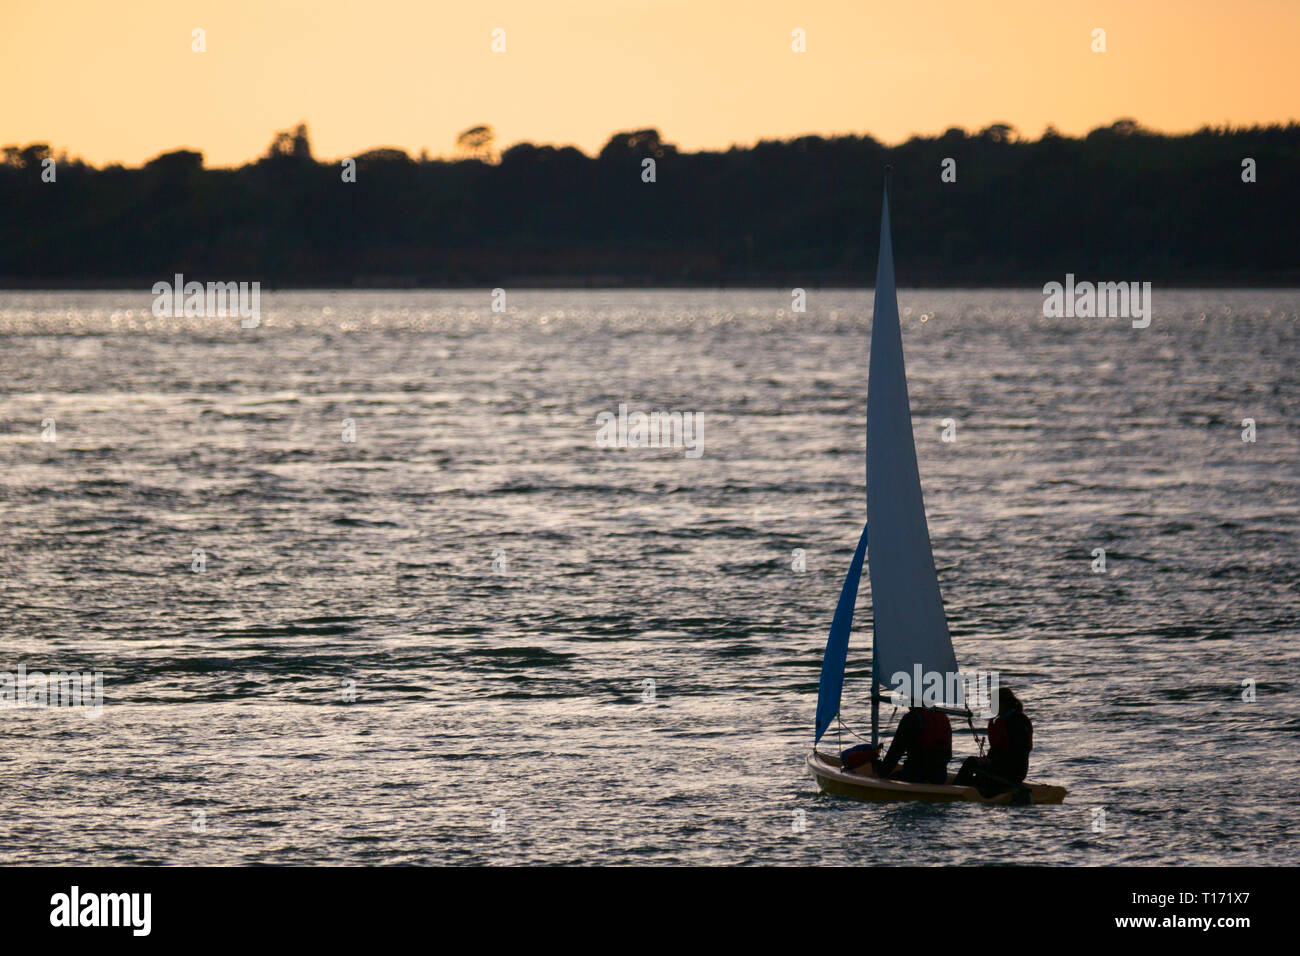 small,sailing,dinghy,racing,race,the,Solent,Cowes,Isle of Wight,England,UK, - Stock Image